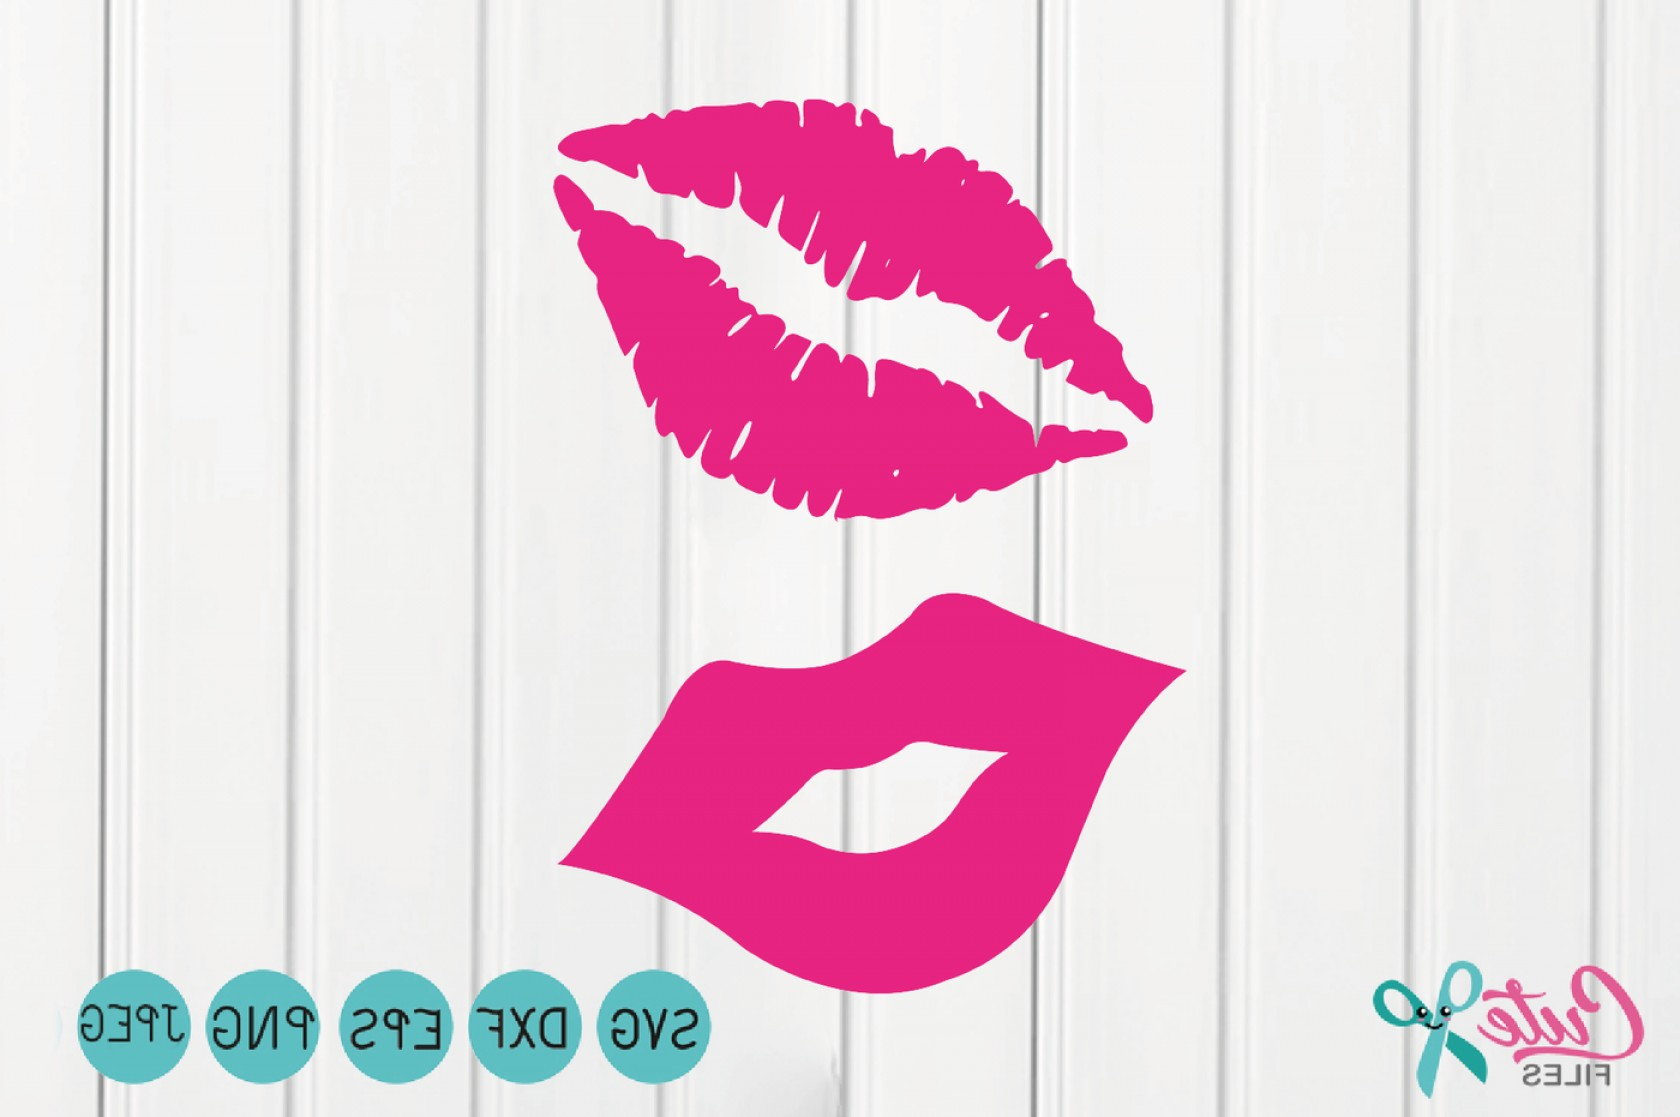 Kiss Clip Art Vector: Kiss Svg Lips Svg Happy Valentines Day Svg Files Kiss Clipart Lips Silhouette Studio Lips Vector File For Cutting Machines Kisses